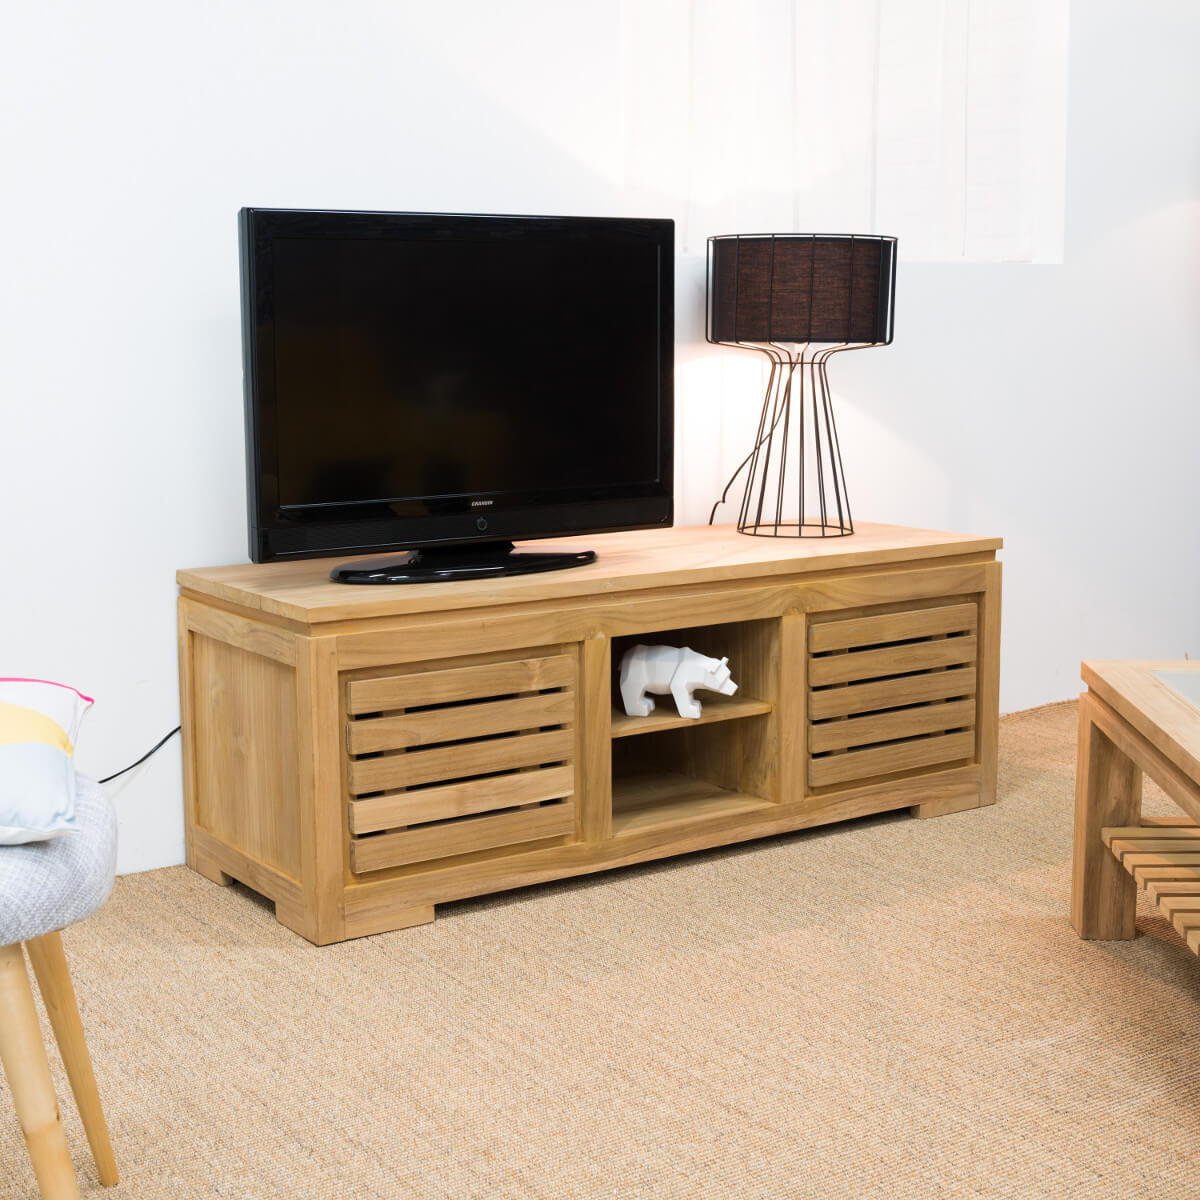 Meuble Tv Teck Meuble Tv Bois Naturel Rectangle Zen 140 Cm # Table Basse Pour Televiseur